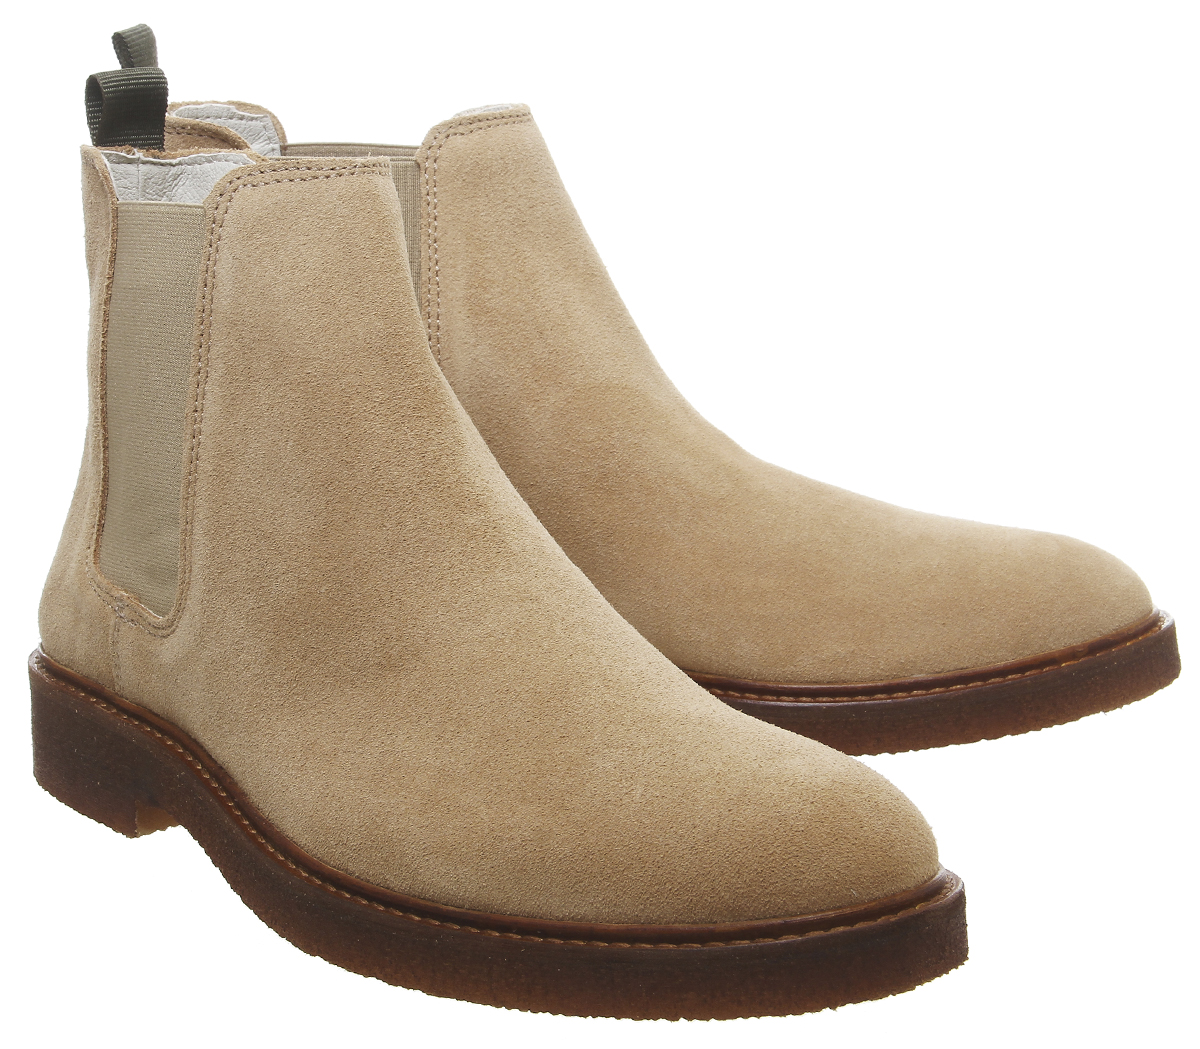 Mens-Office-Locked-Chelsea-Boots-Beige-Suede-Boots thumbnail 13